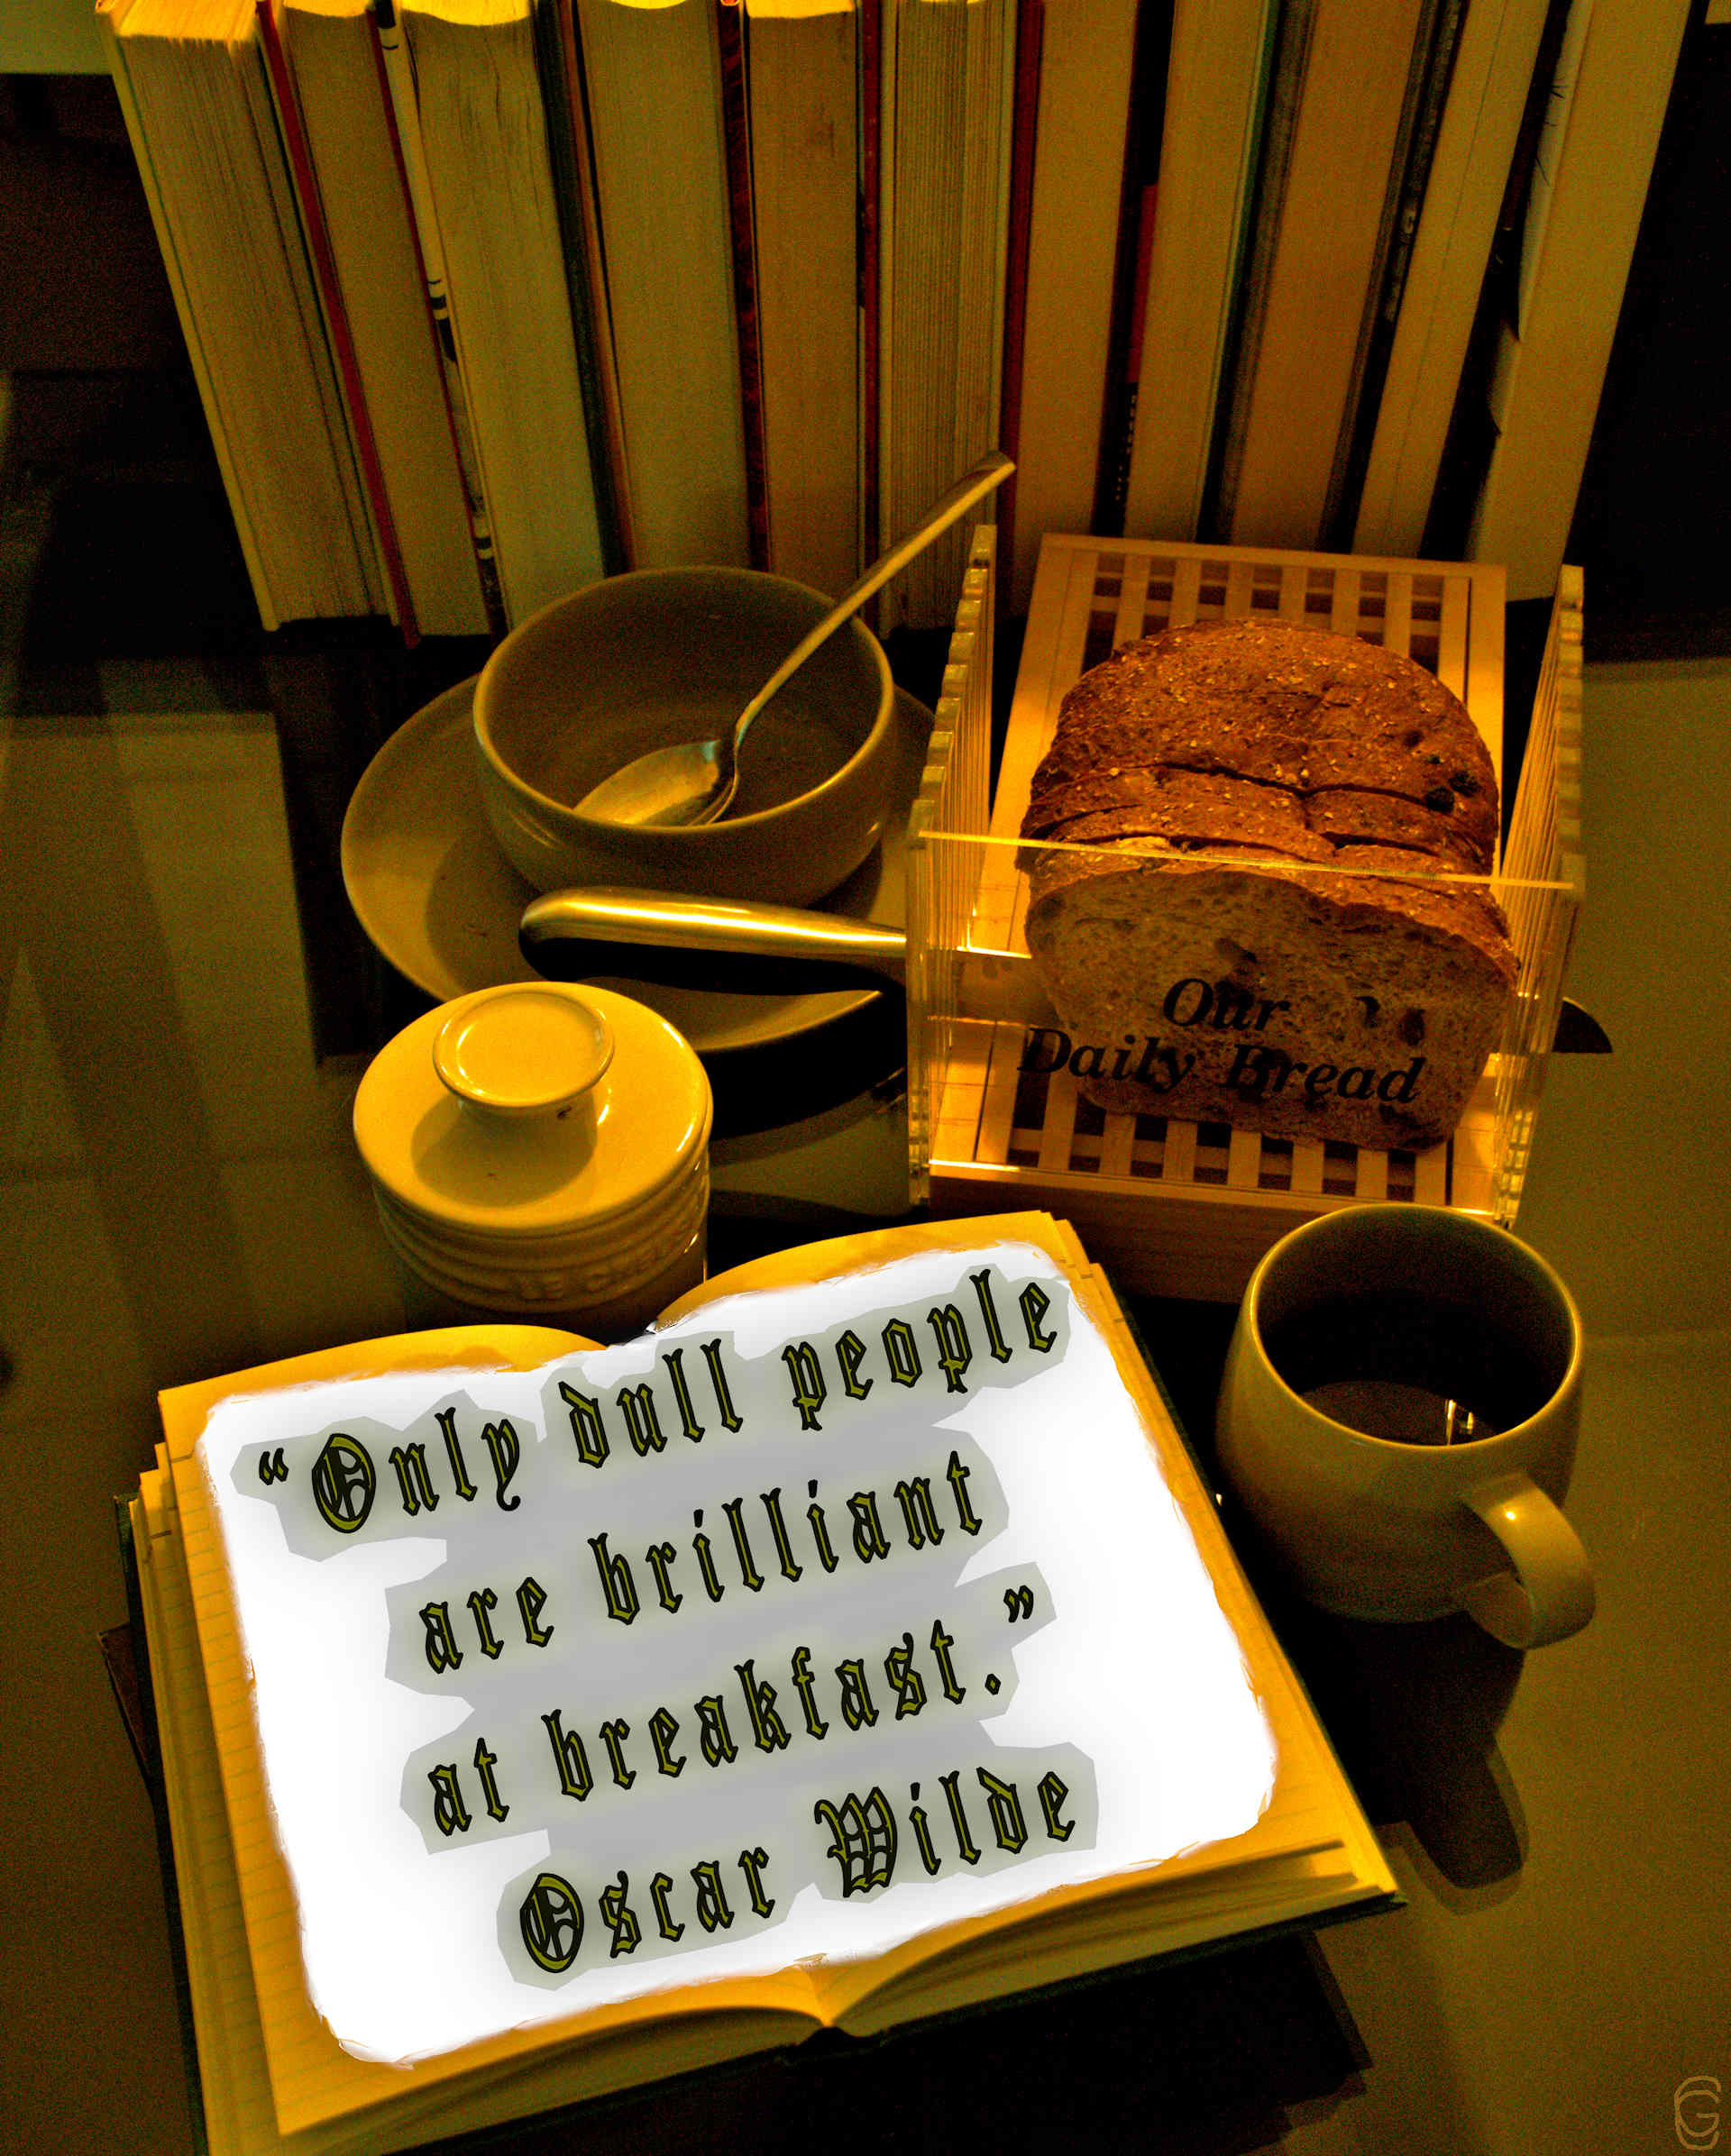 From Oscar Wilde Quotes - Week of Feb. 11th to Feb. 15th